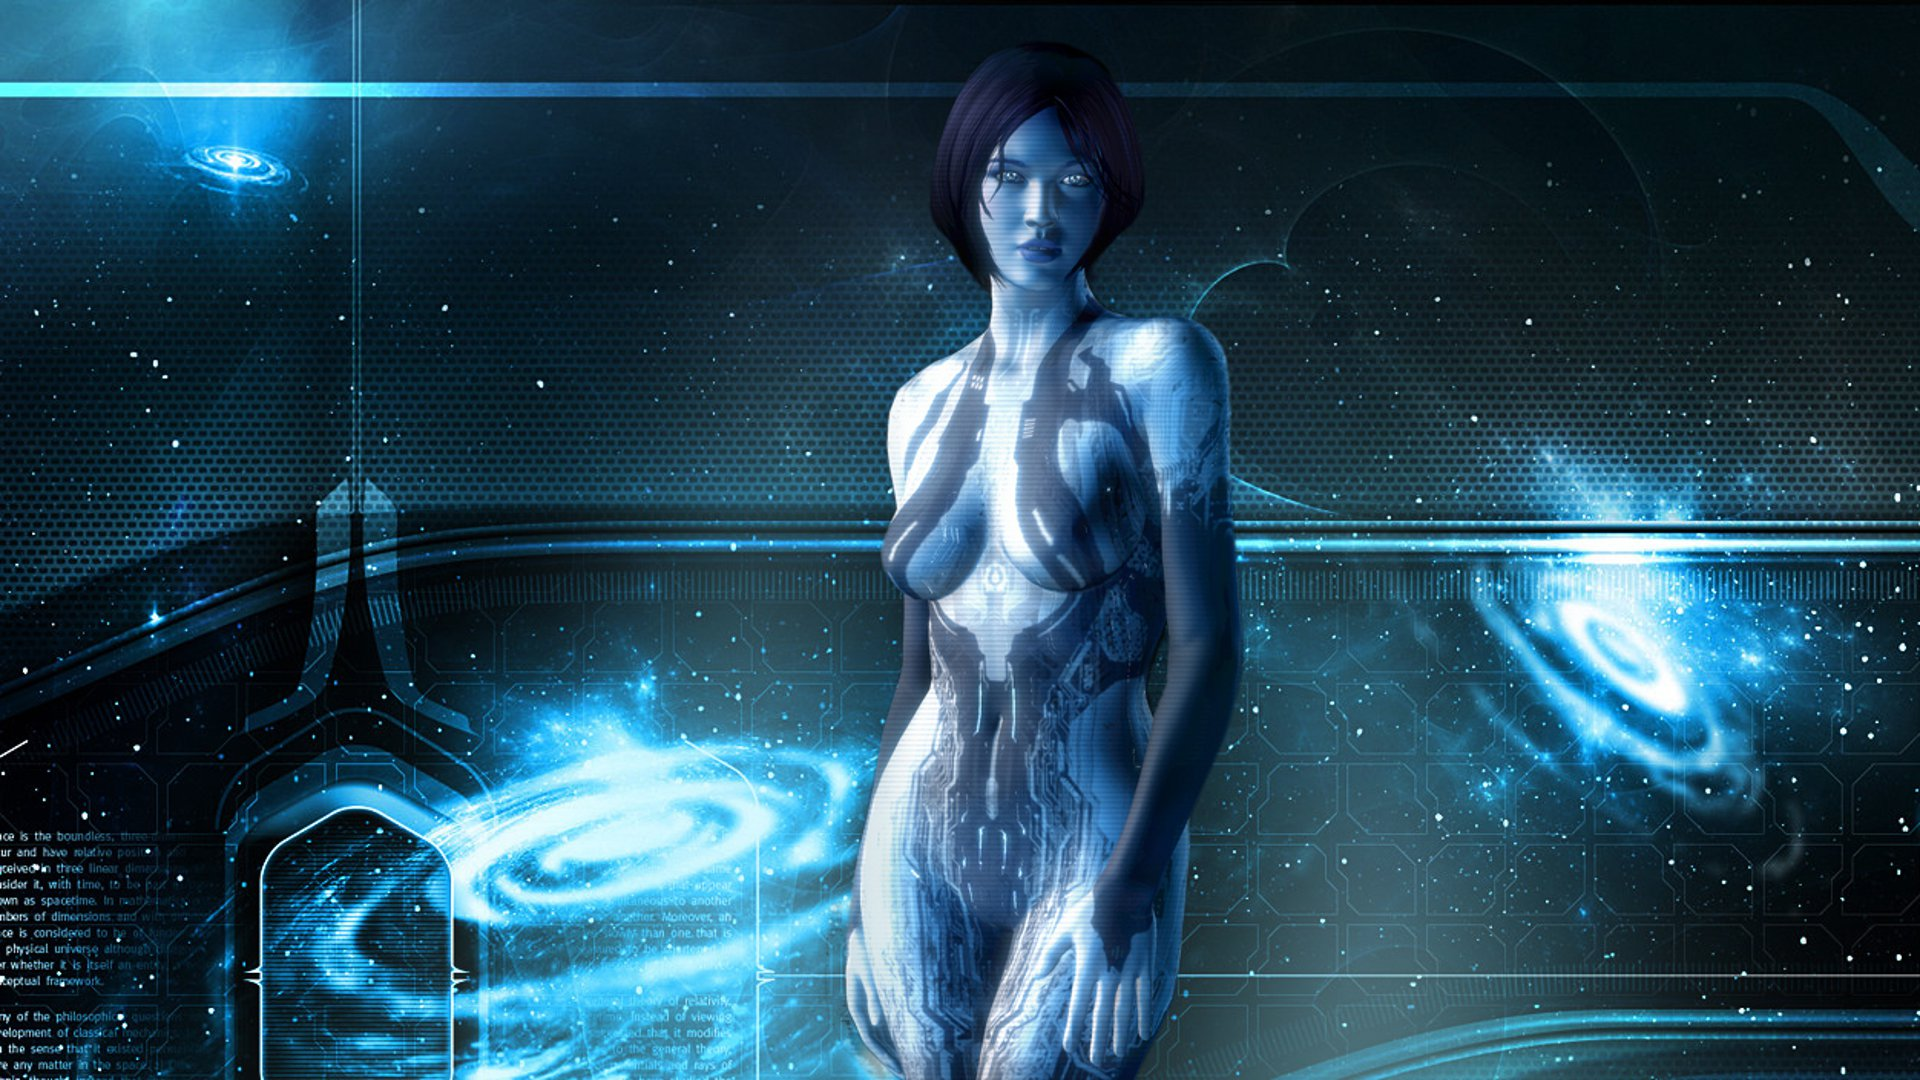 Halo 2 cortana nude xxx images